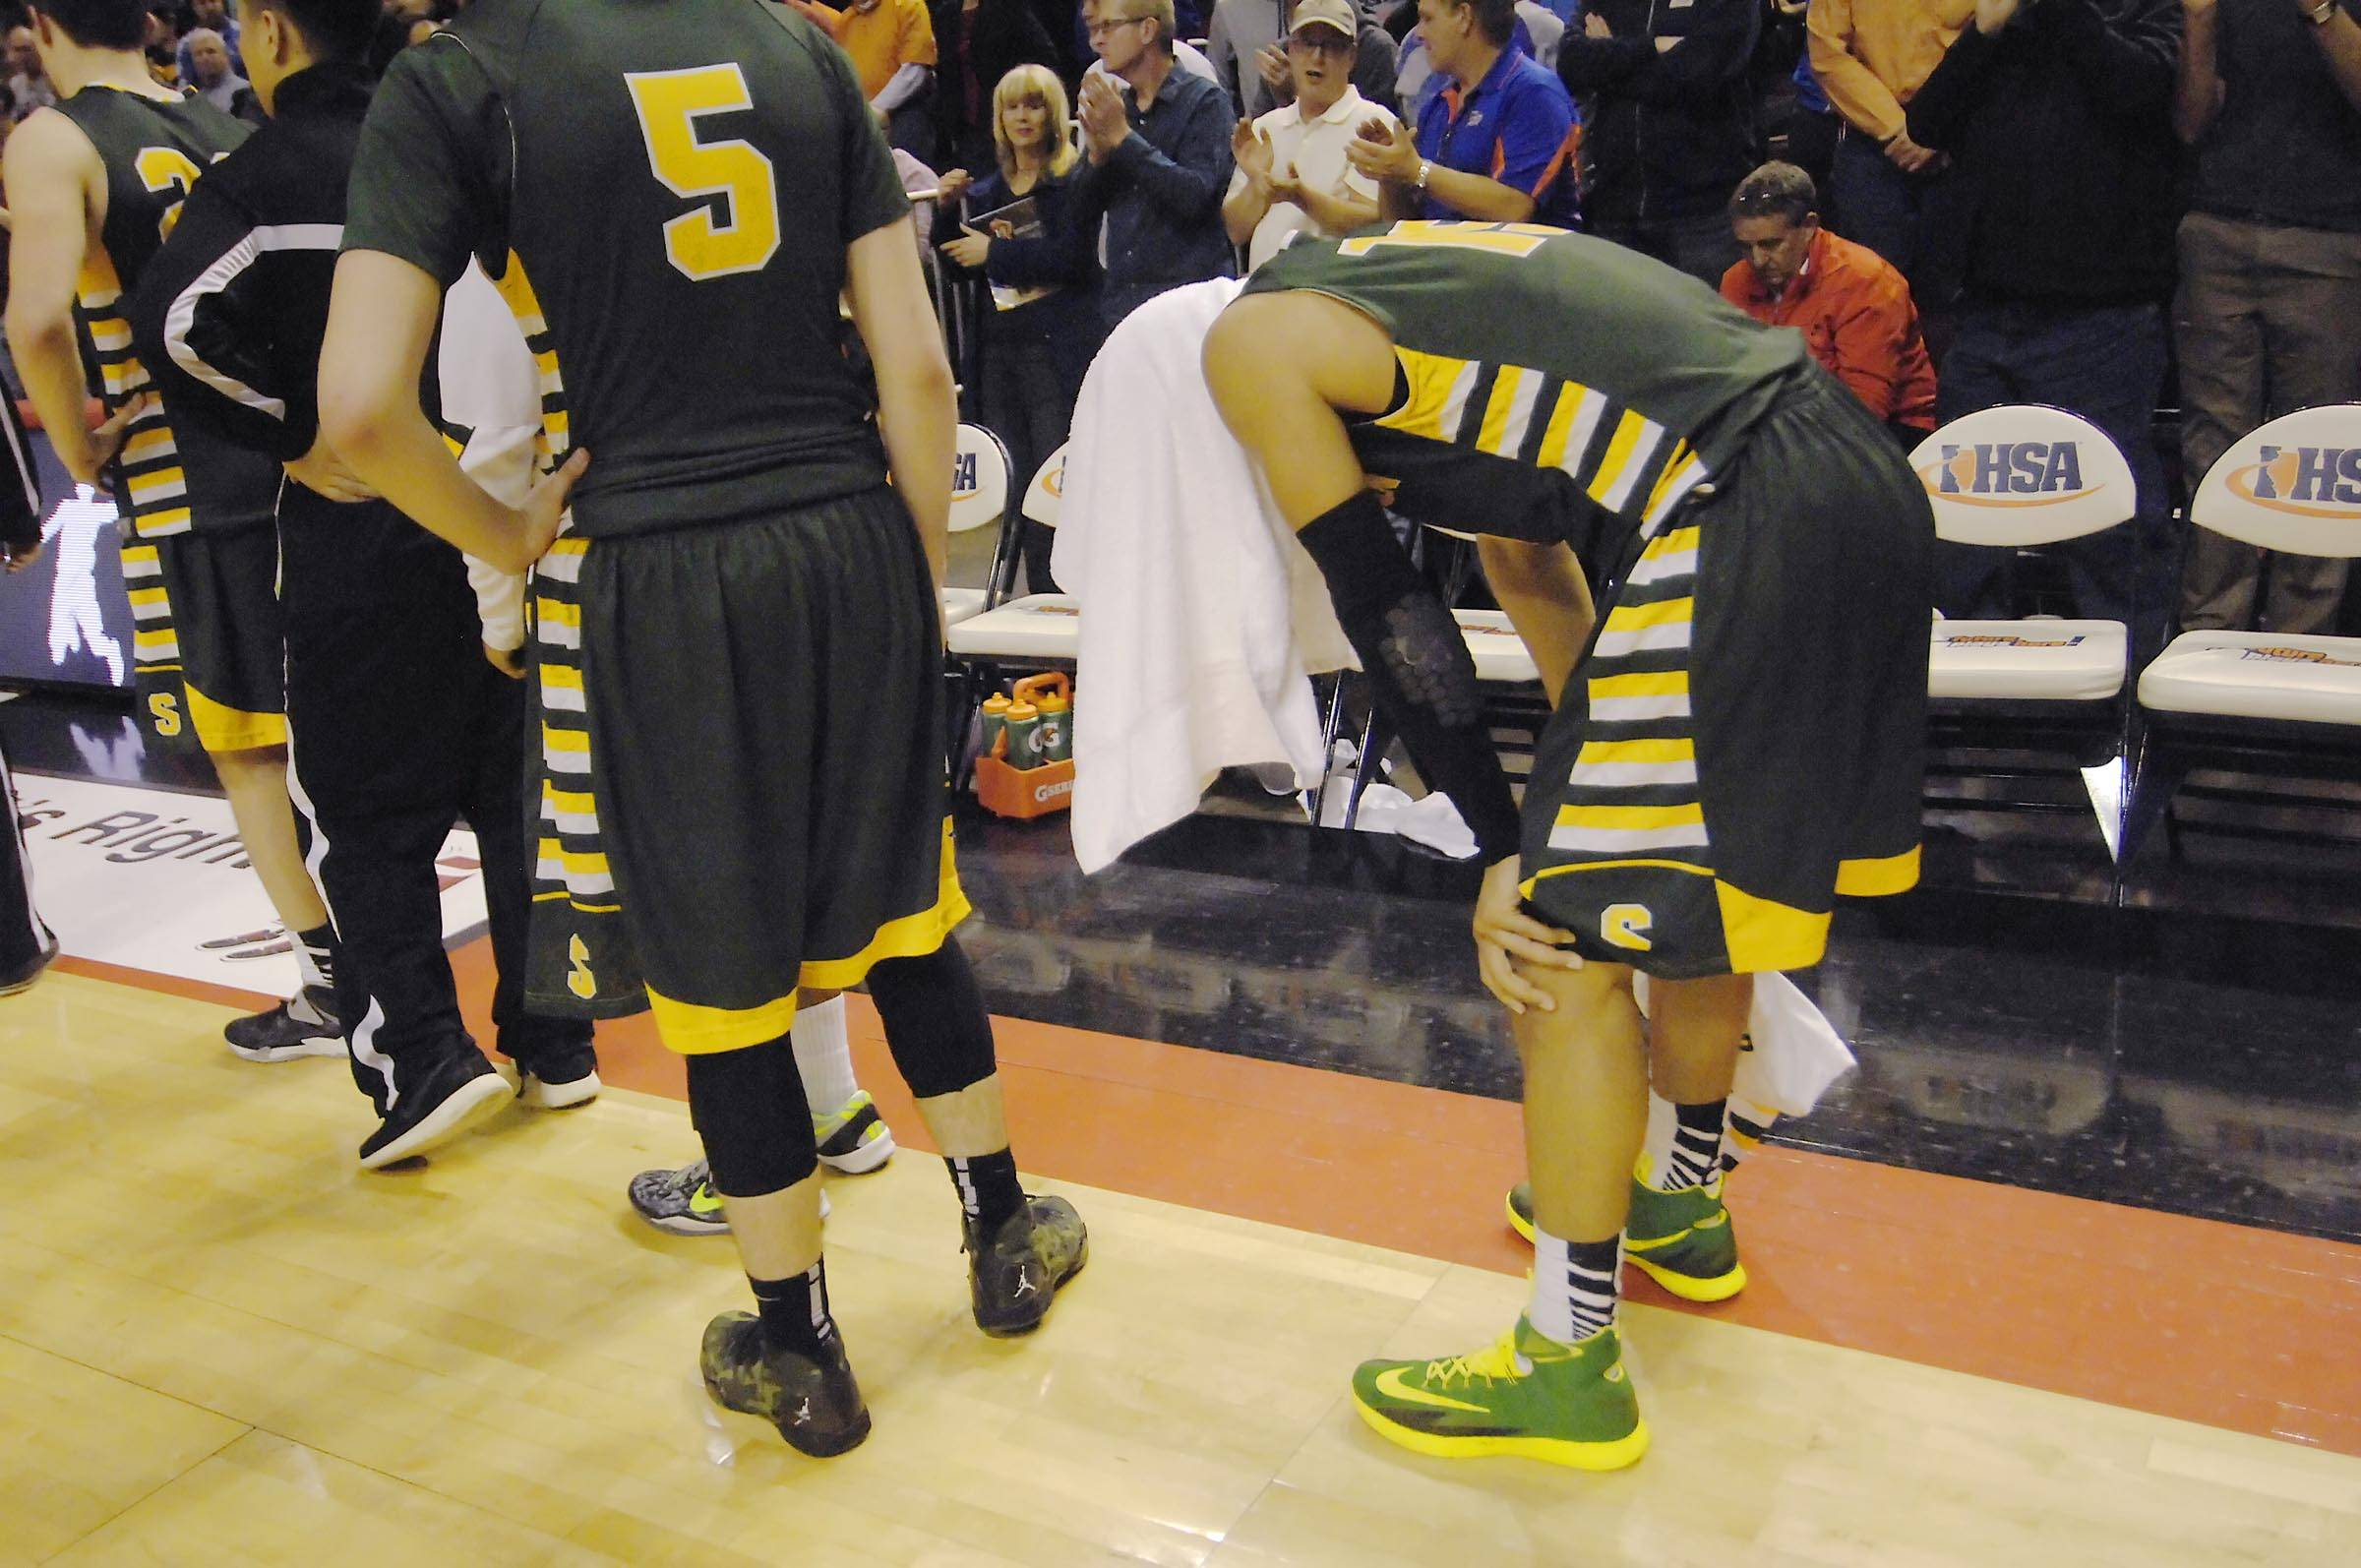 Stevenson's Jalen Brunson covers his head with a towel after the game.